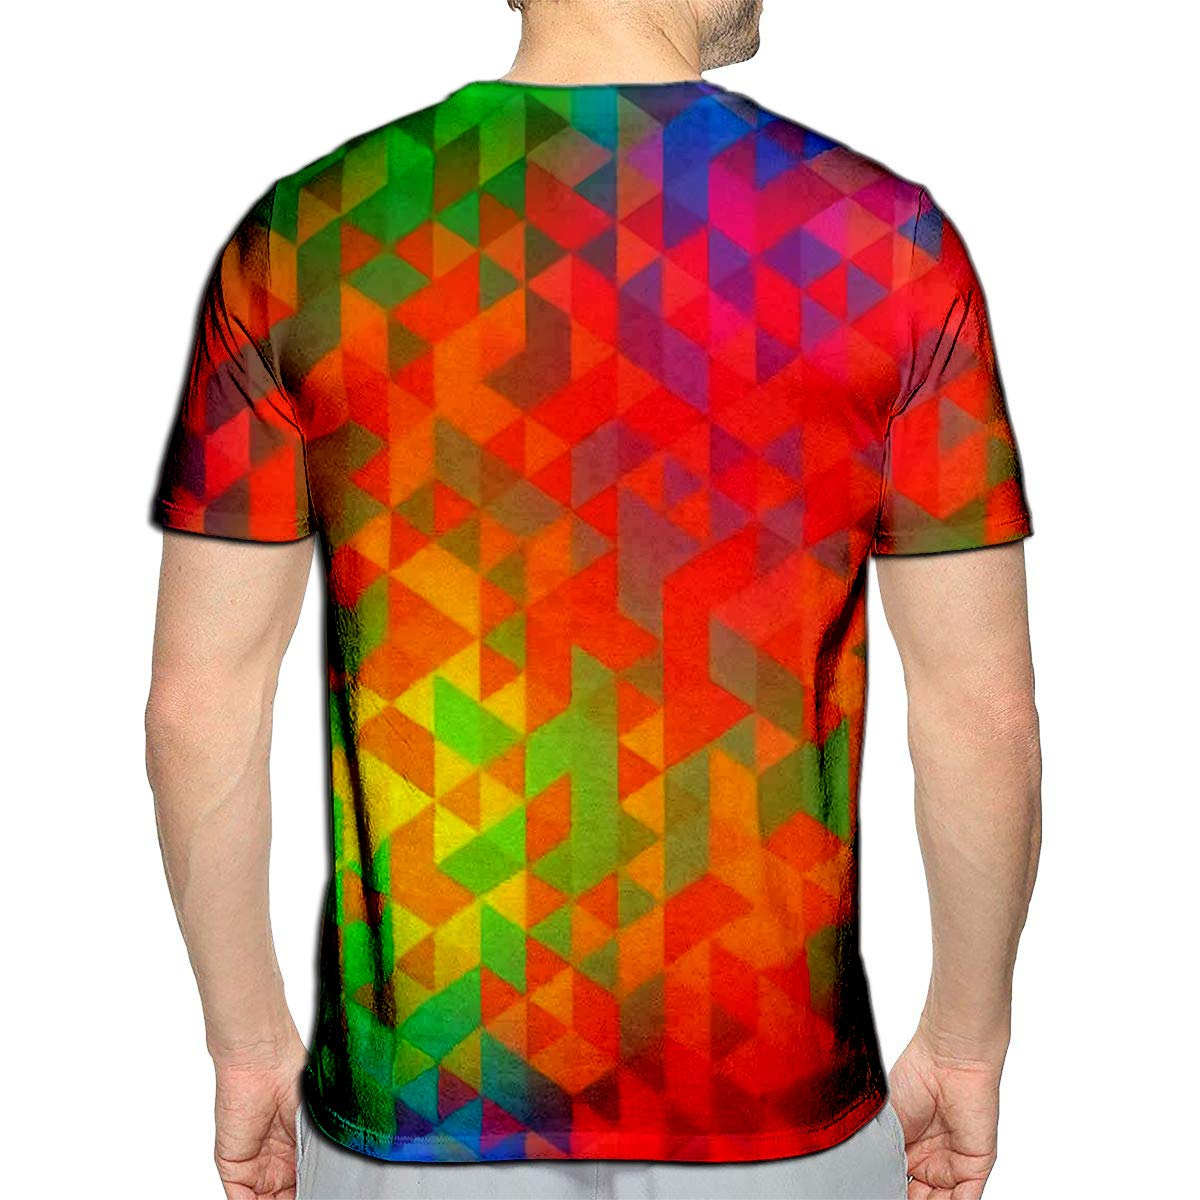 3D Printed T Shirts Gold Floral Spring with Daisy Flowers Leaves and Decorative Designs Casual Mens Hipster Top Tees